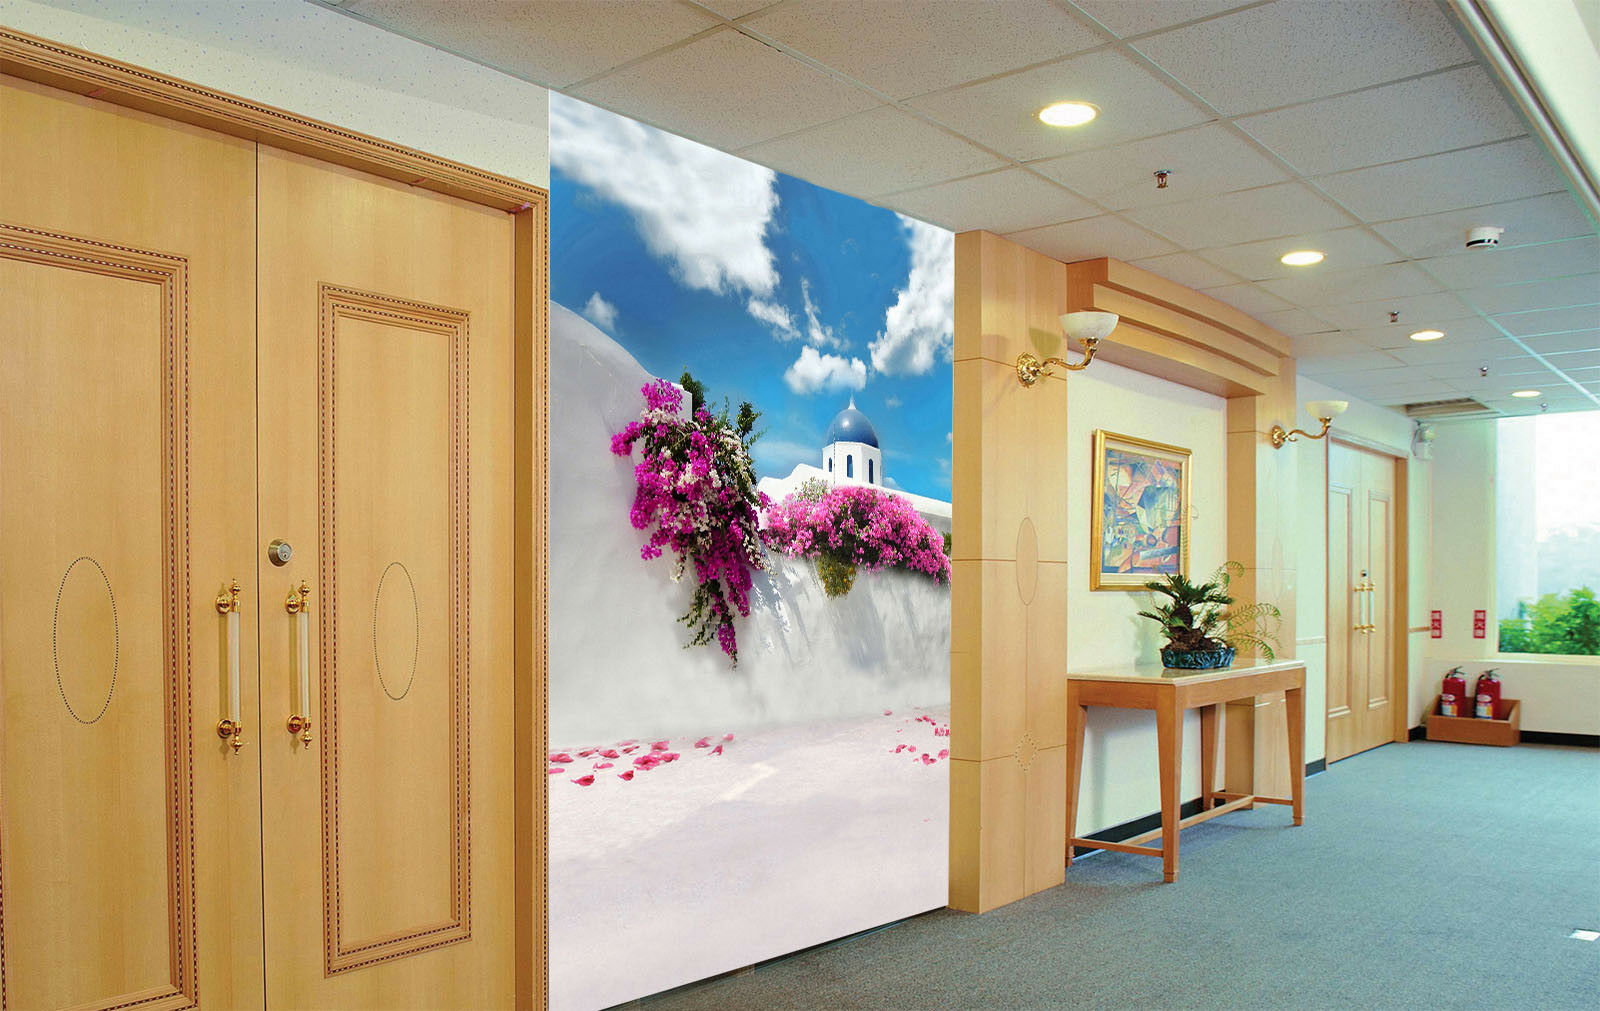 3D Flower Wall House 56 Wall Paper Wall Print Decal Wall Deco Indoor Mural Carly